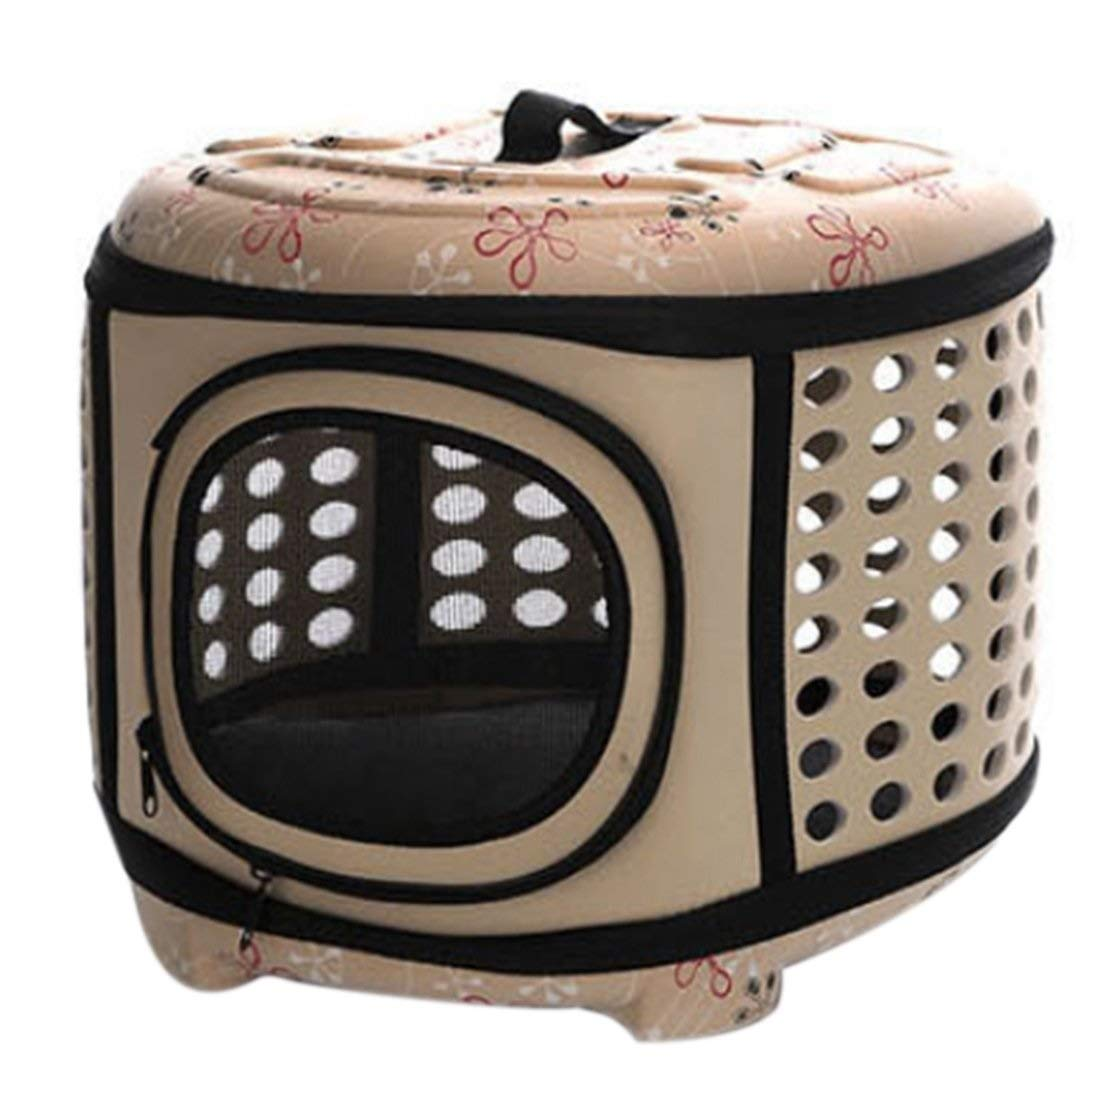 Apricot XAJGW Deluxe Pet Carrier Backpack for Small Cats and Dogs, Puppies   Ventilated Design, Two-Sided Entry, Safety Features and Cushion Back Support   for Travel,Outdoor Use